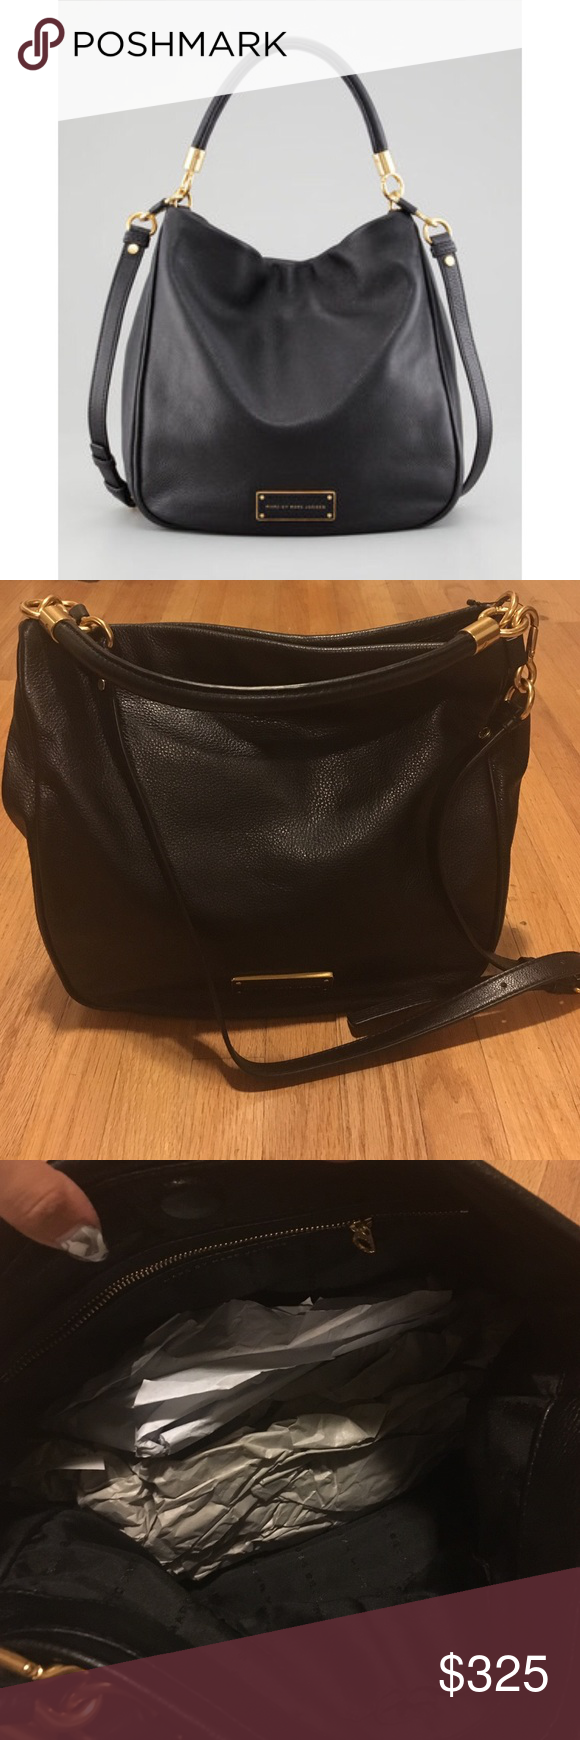 MARC BY MARC JACOBS hobo bag MARC BY MARC JACOBS black hobo bag. New q hillier hobo bag in soft grain leather. Has gold hardware, magnetic closure and three interior pockets one with zip closure. A stunning price for everyday wear! Marc by Marc Jacobs Bags Hobos